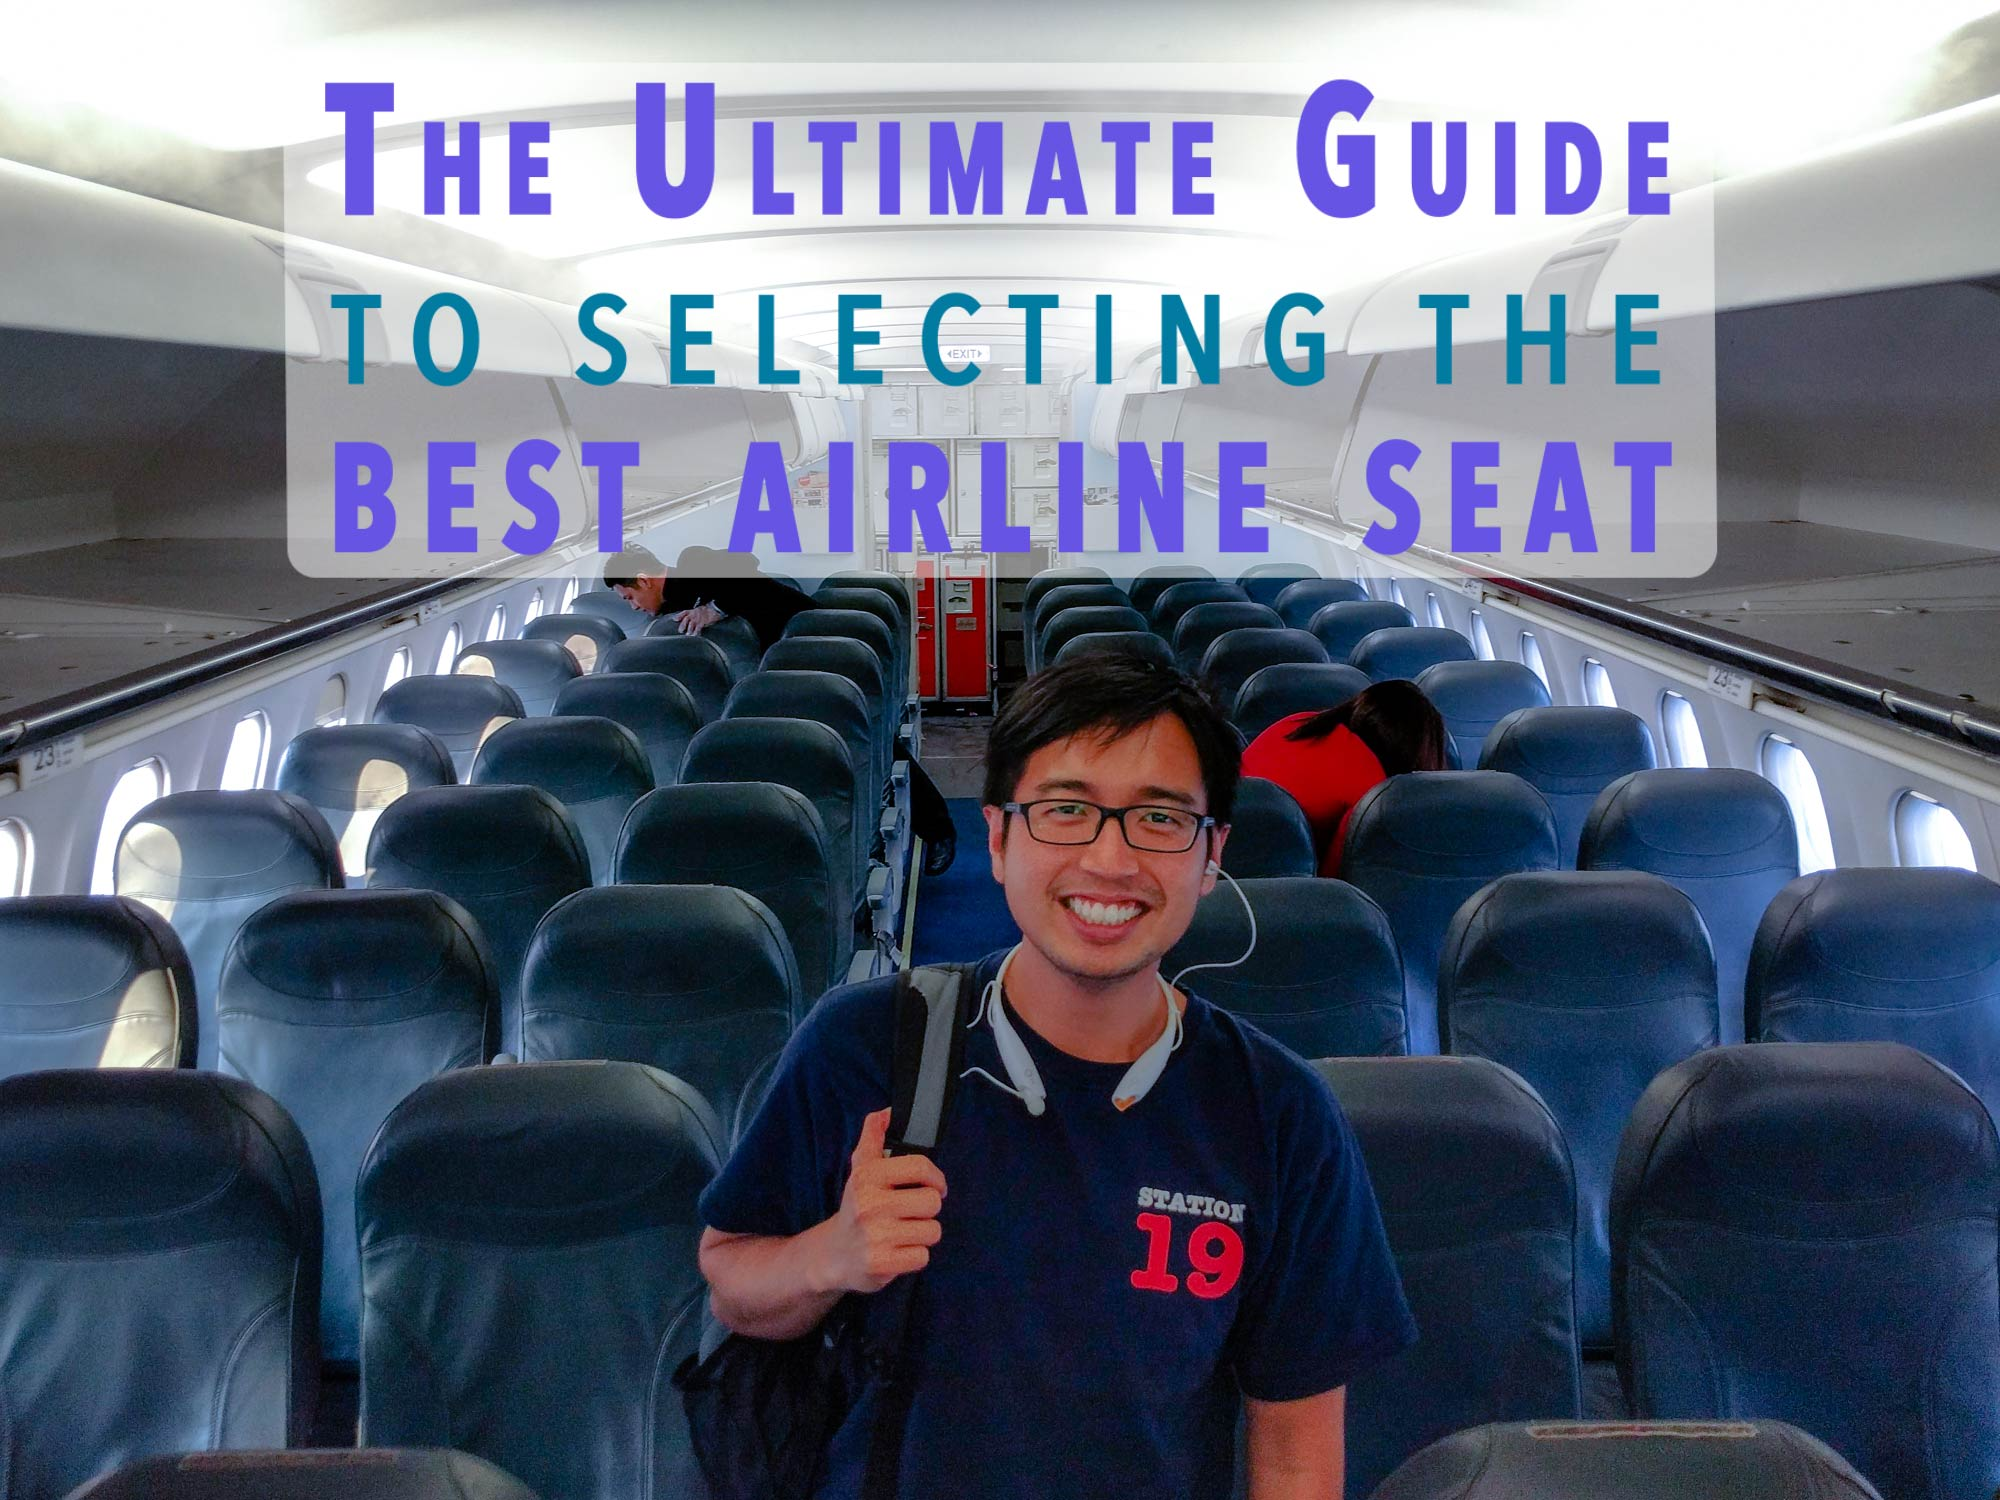 How To Pick An Airline Seat: Tips For Pro Travelers